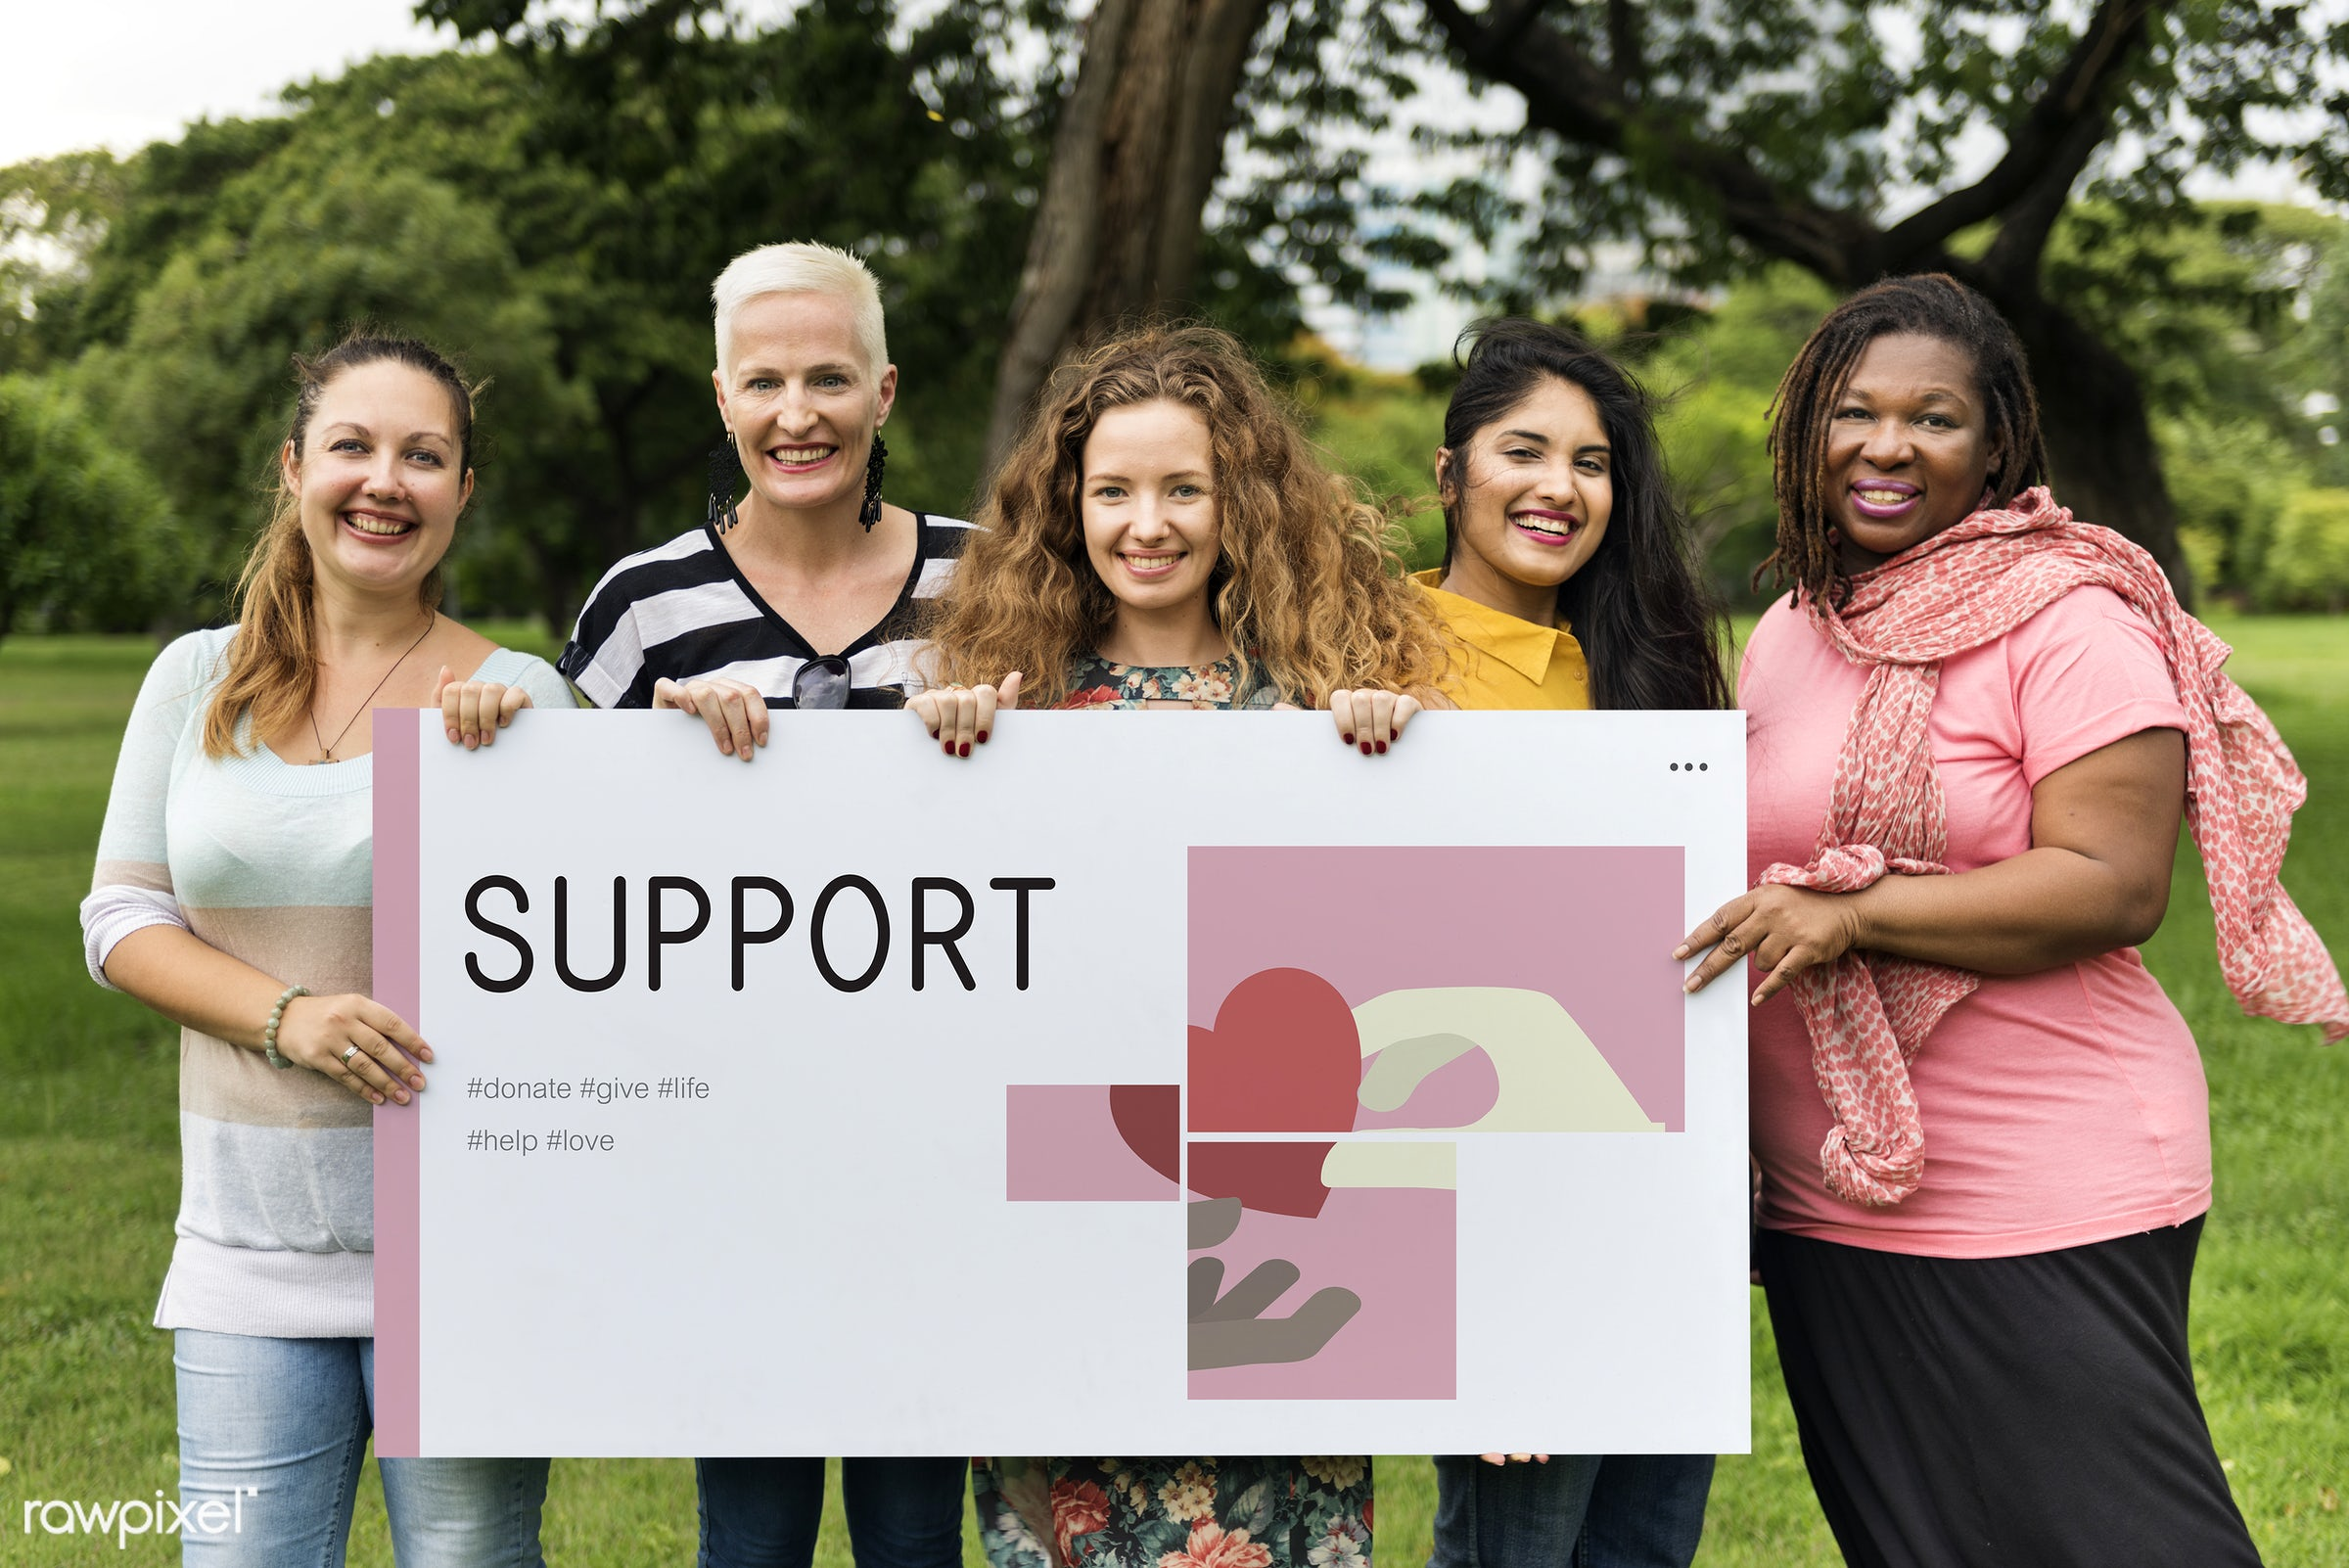 Women support group - charity, adult, campaign, card, cares, community, cooperation, diversity, donations, endowment, female...